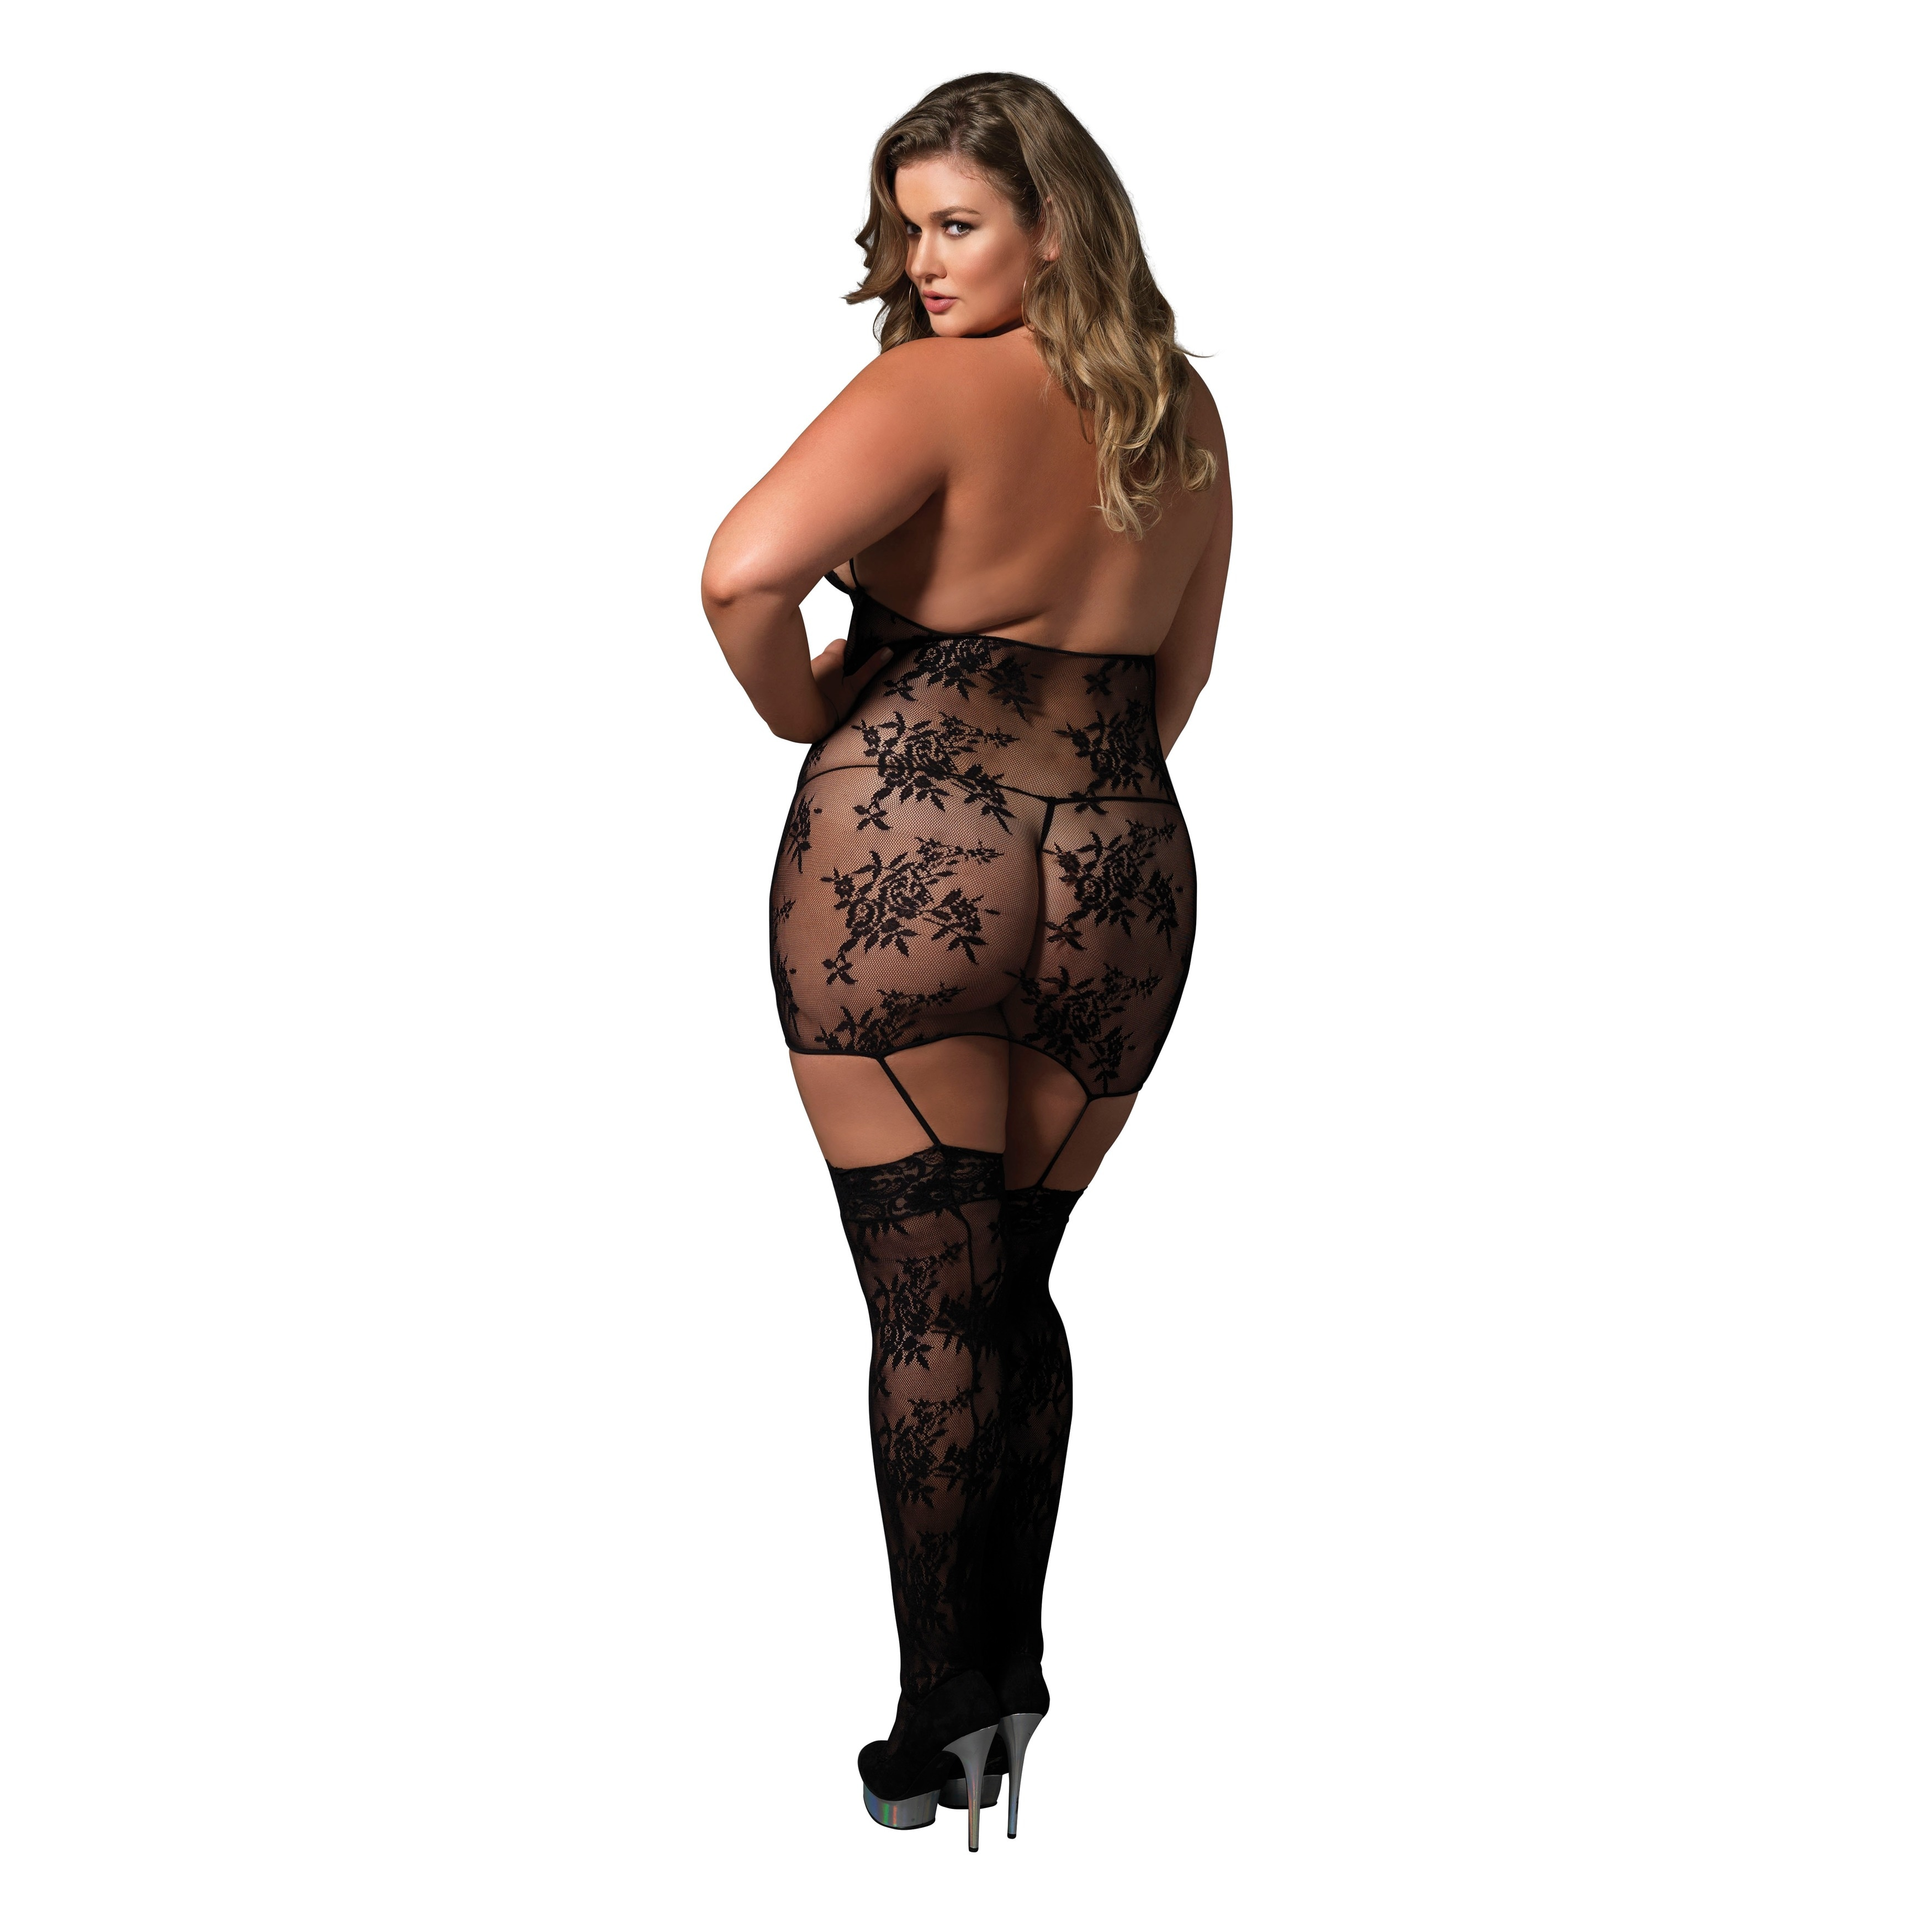 1e808b1b9 Shop Leg Avenue Women s Plus Size Black Lace Cage Strap Suspender Bodystocking  Lingerie - Free Shipping On Orders Over  45 - Overstock - 13935996